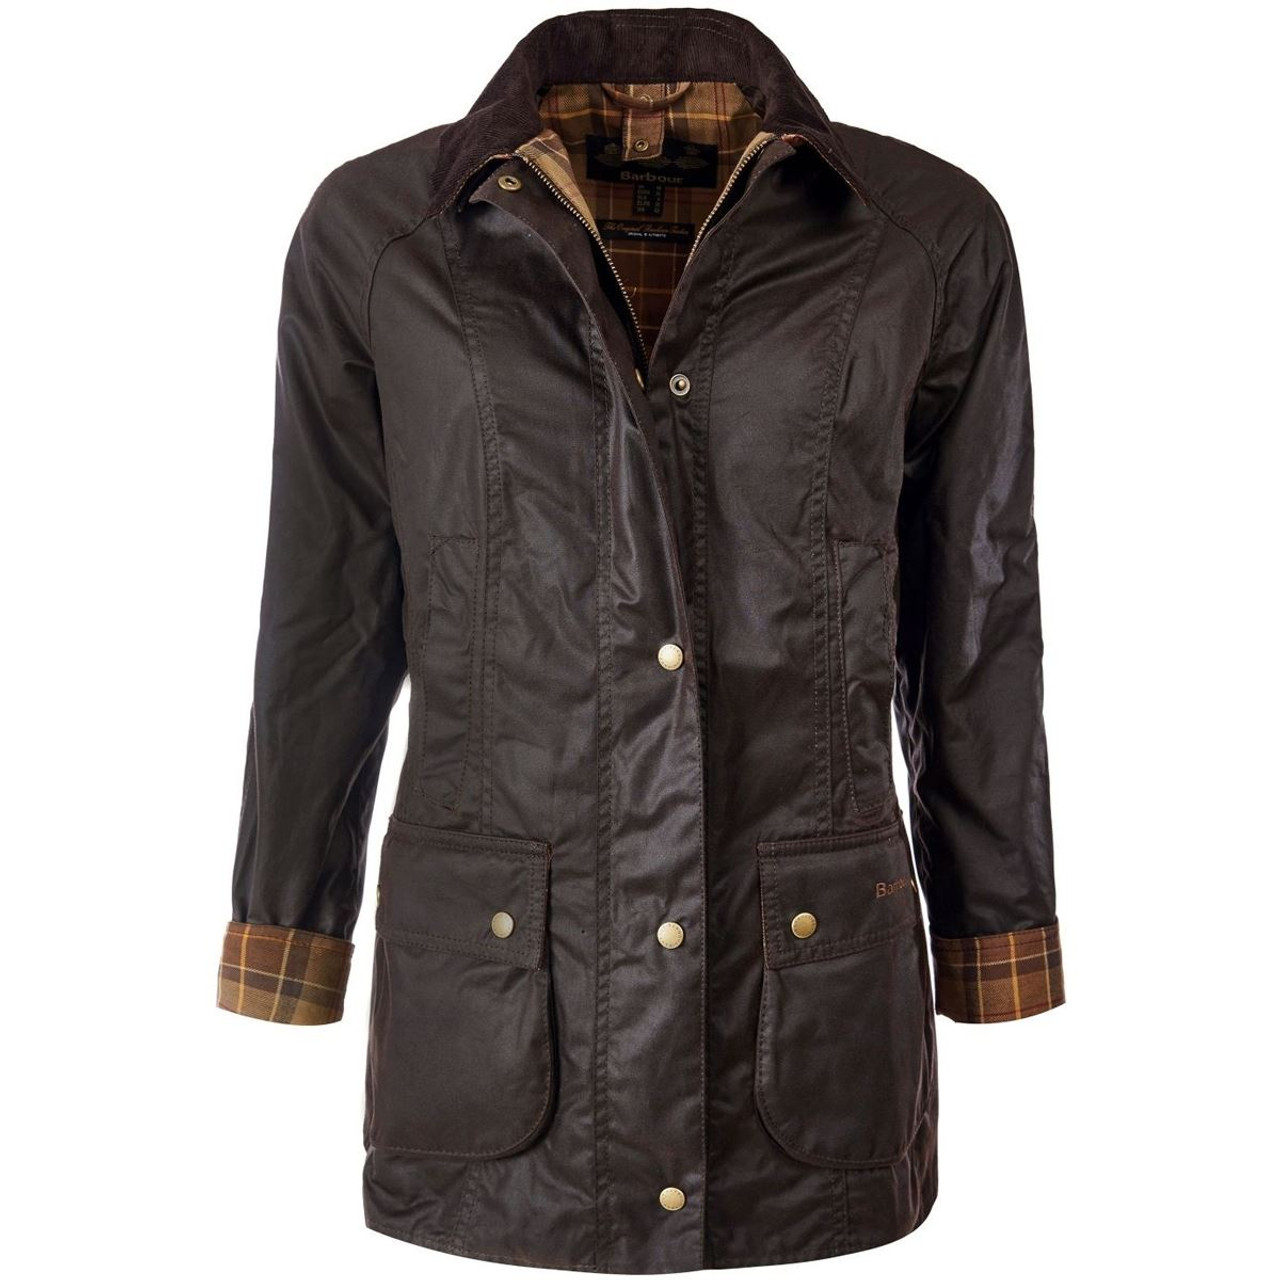 Rustic Barbour Womens Beadnell Wax Jacket